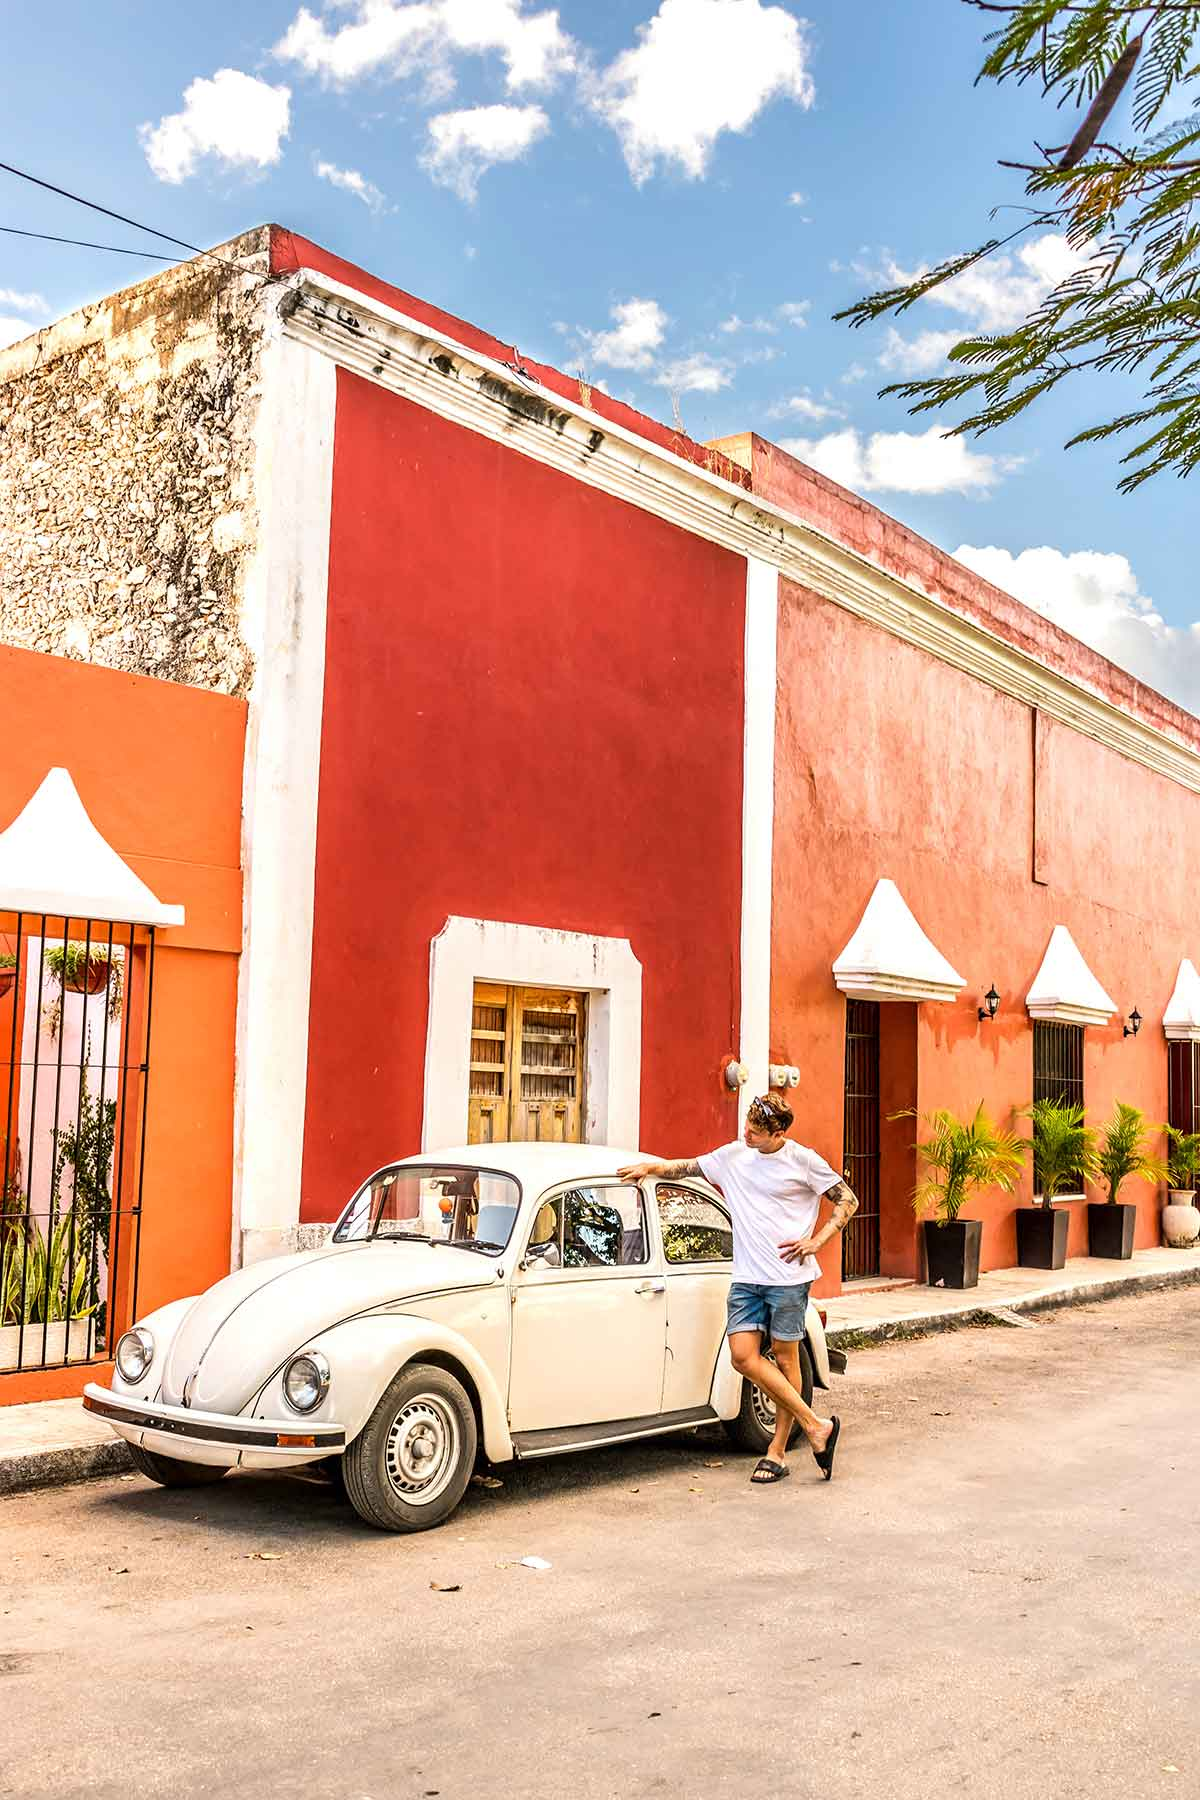 20 EPIC Valladolid Instagram spots for travelling Mexico. A man leans on an old beetle in the streets of Valladolid outside some colourful buildings